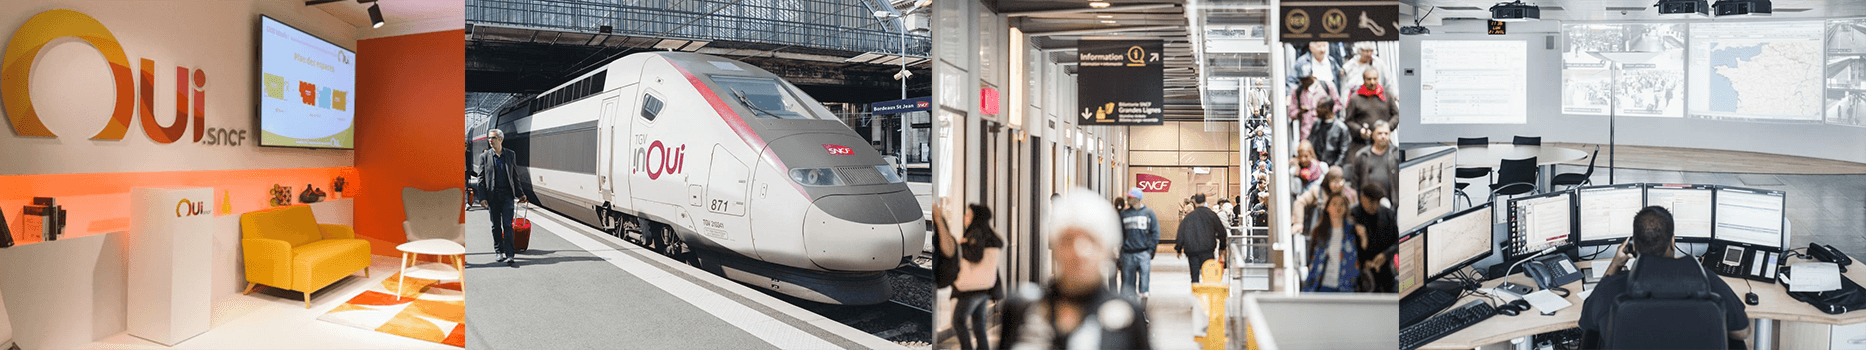 Cartographie et business intelligence Qlik à la SNCF